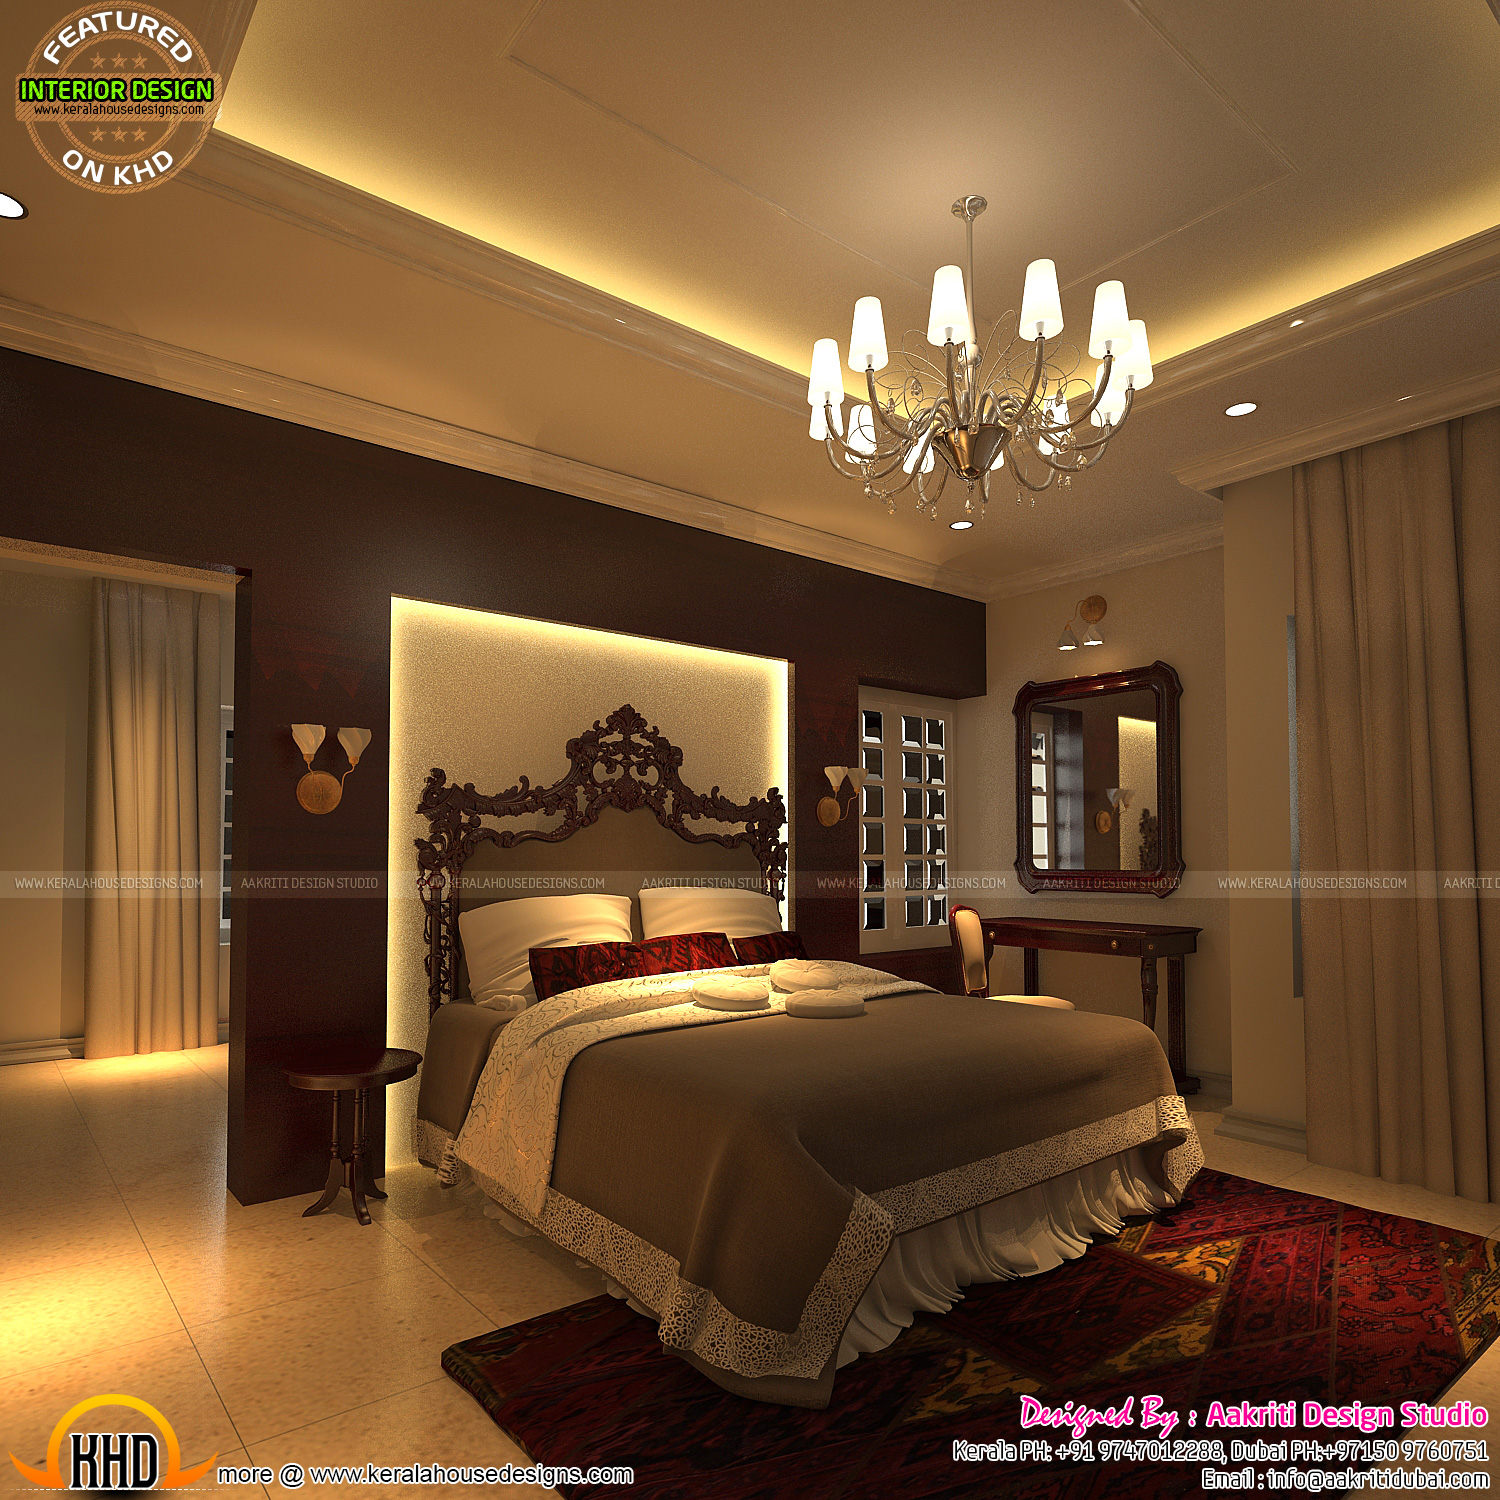 Master bedroom living and terrace gazebo kerala home design and floor plans Master bedroom with terrace